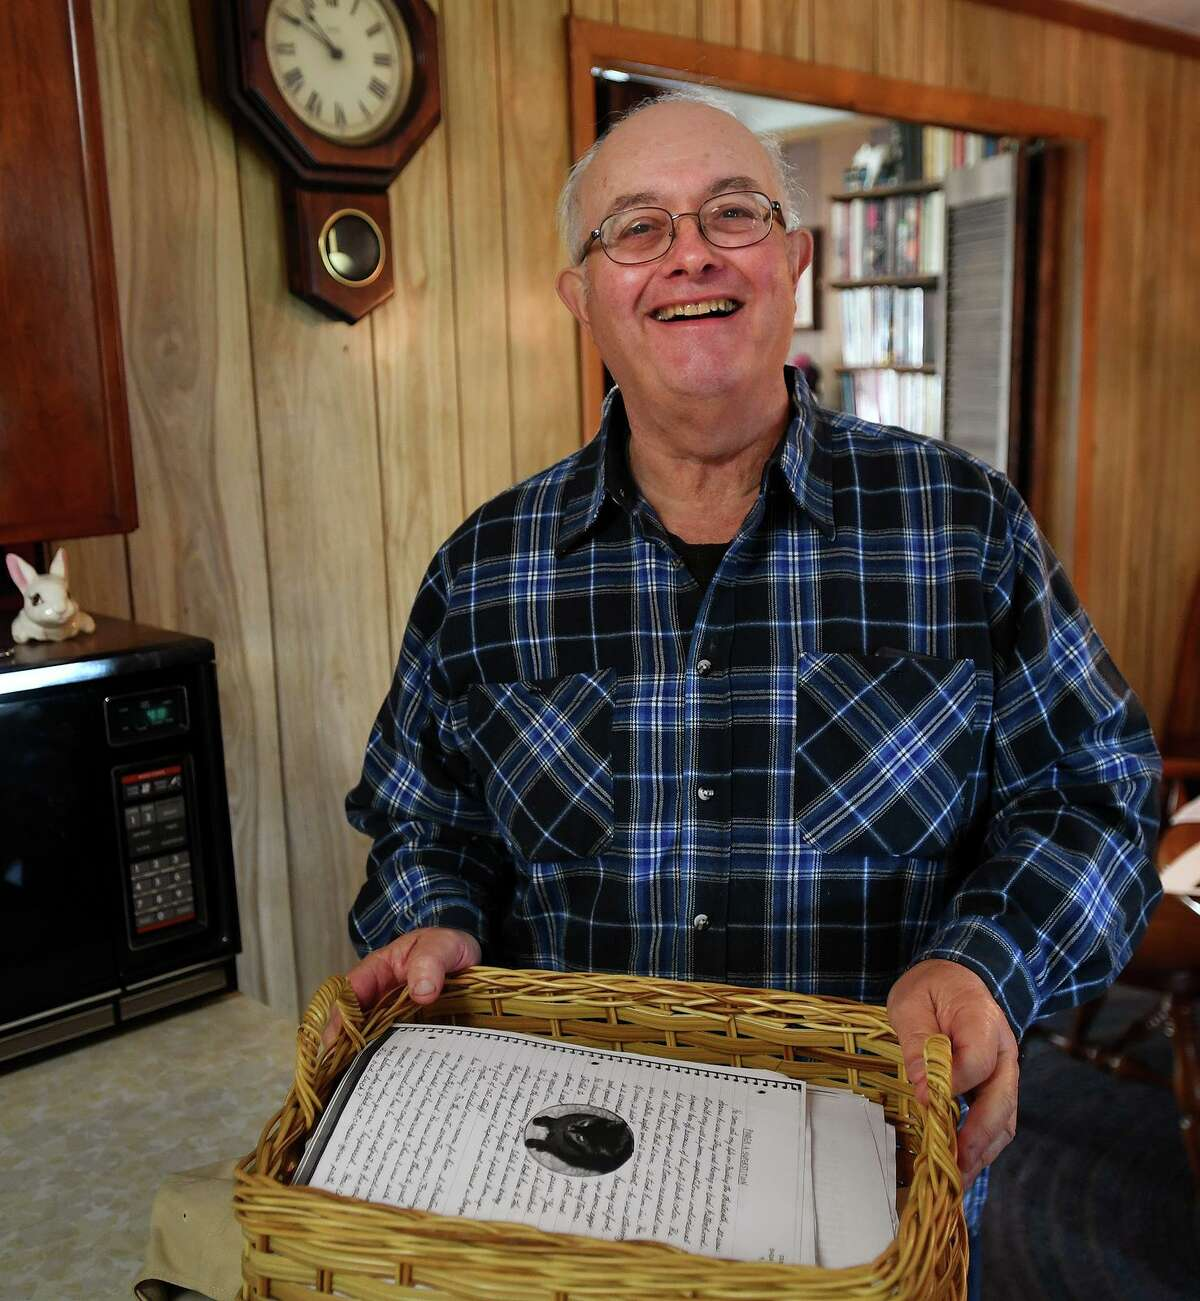 """Albert Ruggiero, of Milford, took a basket full of his late wife's writings to publish """"Pearls from Carole"""", a collection of whimsical, autobiographical short stories, in Milford, Conn. on Wednesday, Nov. 5. Carol Ruggiero passed away in March of this year."""